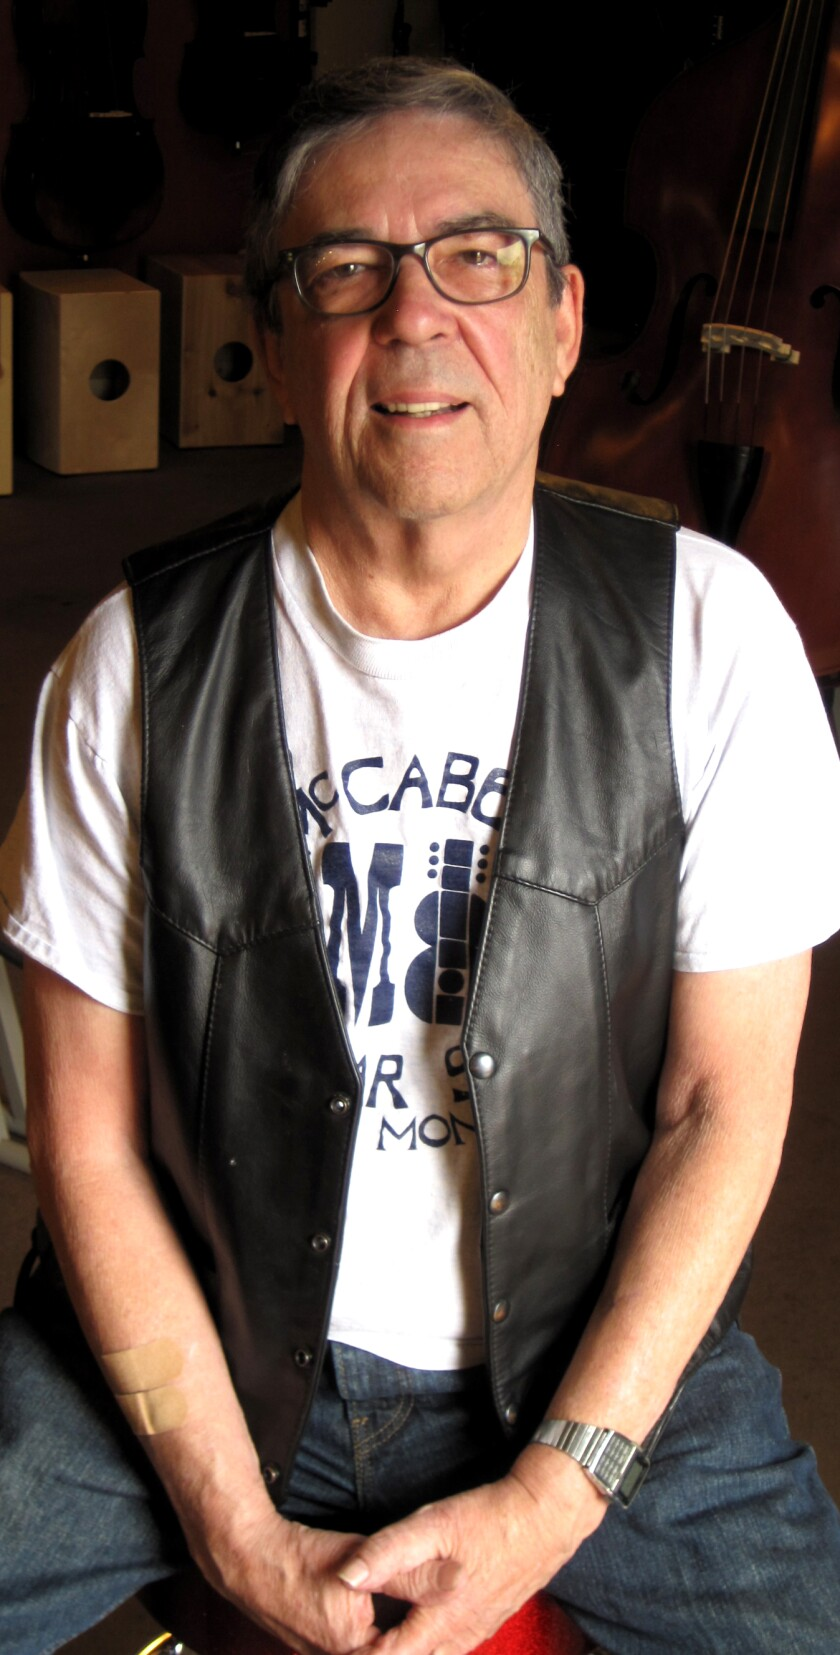 Bob Riskin, co-owner of McCabe's Guitar Shop.